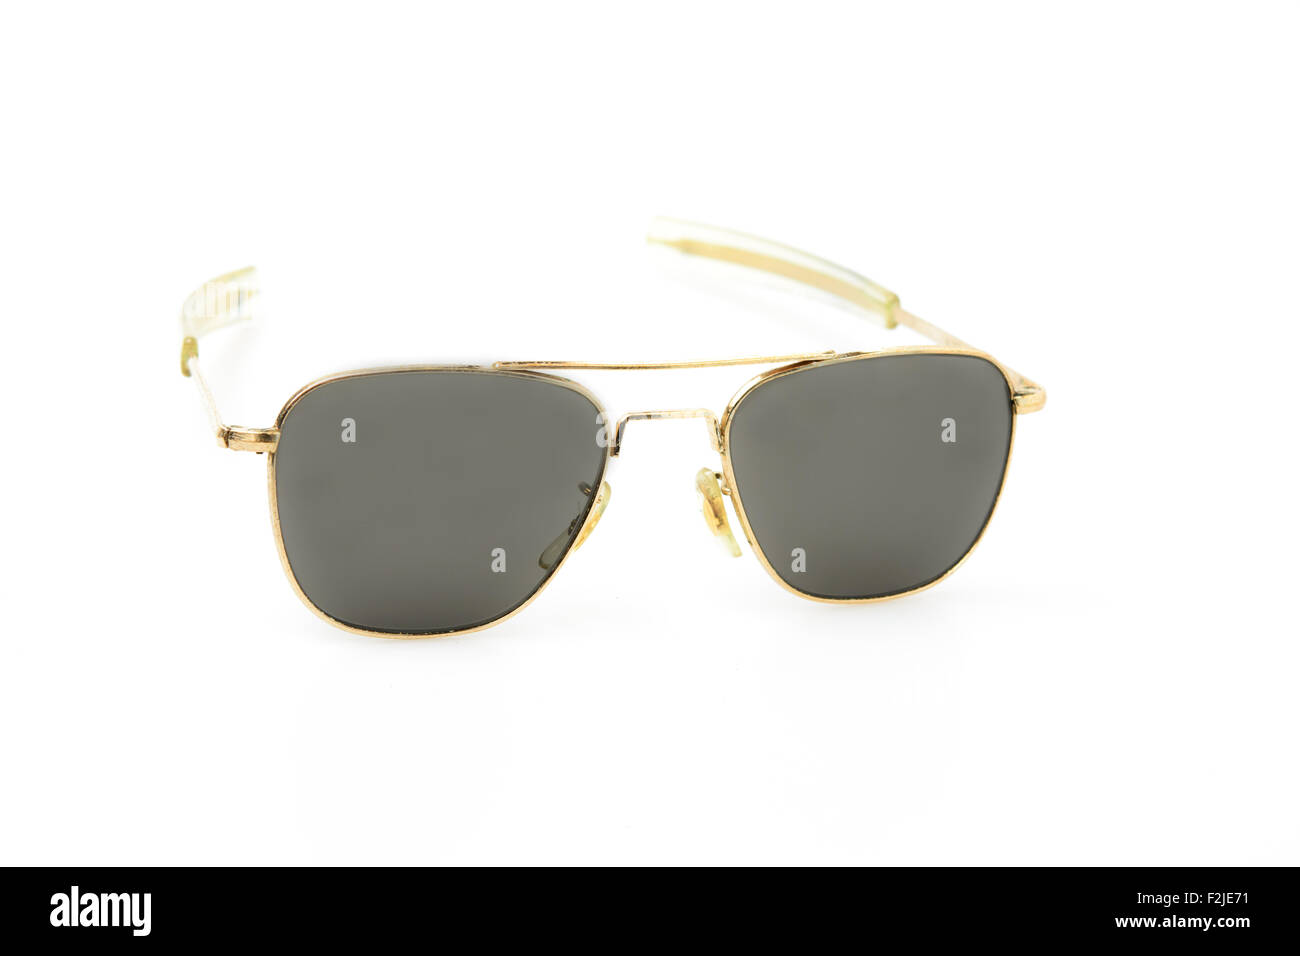 Square Gold Frame Sunglasses : Square gold frame sunglasses, vintage style Stock Photo ...